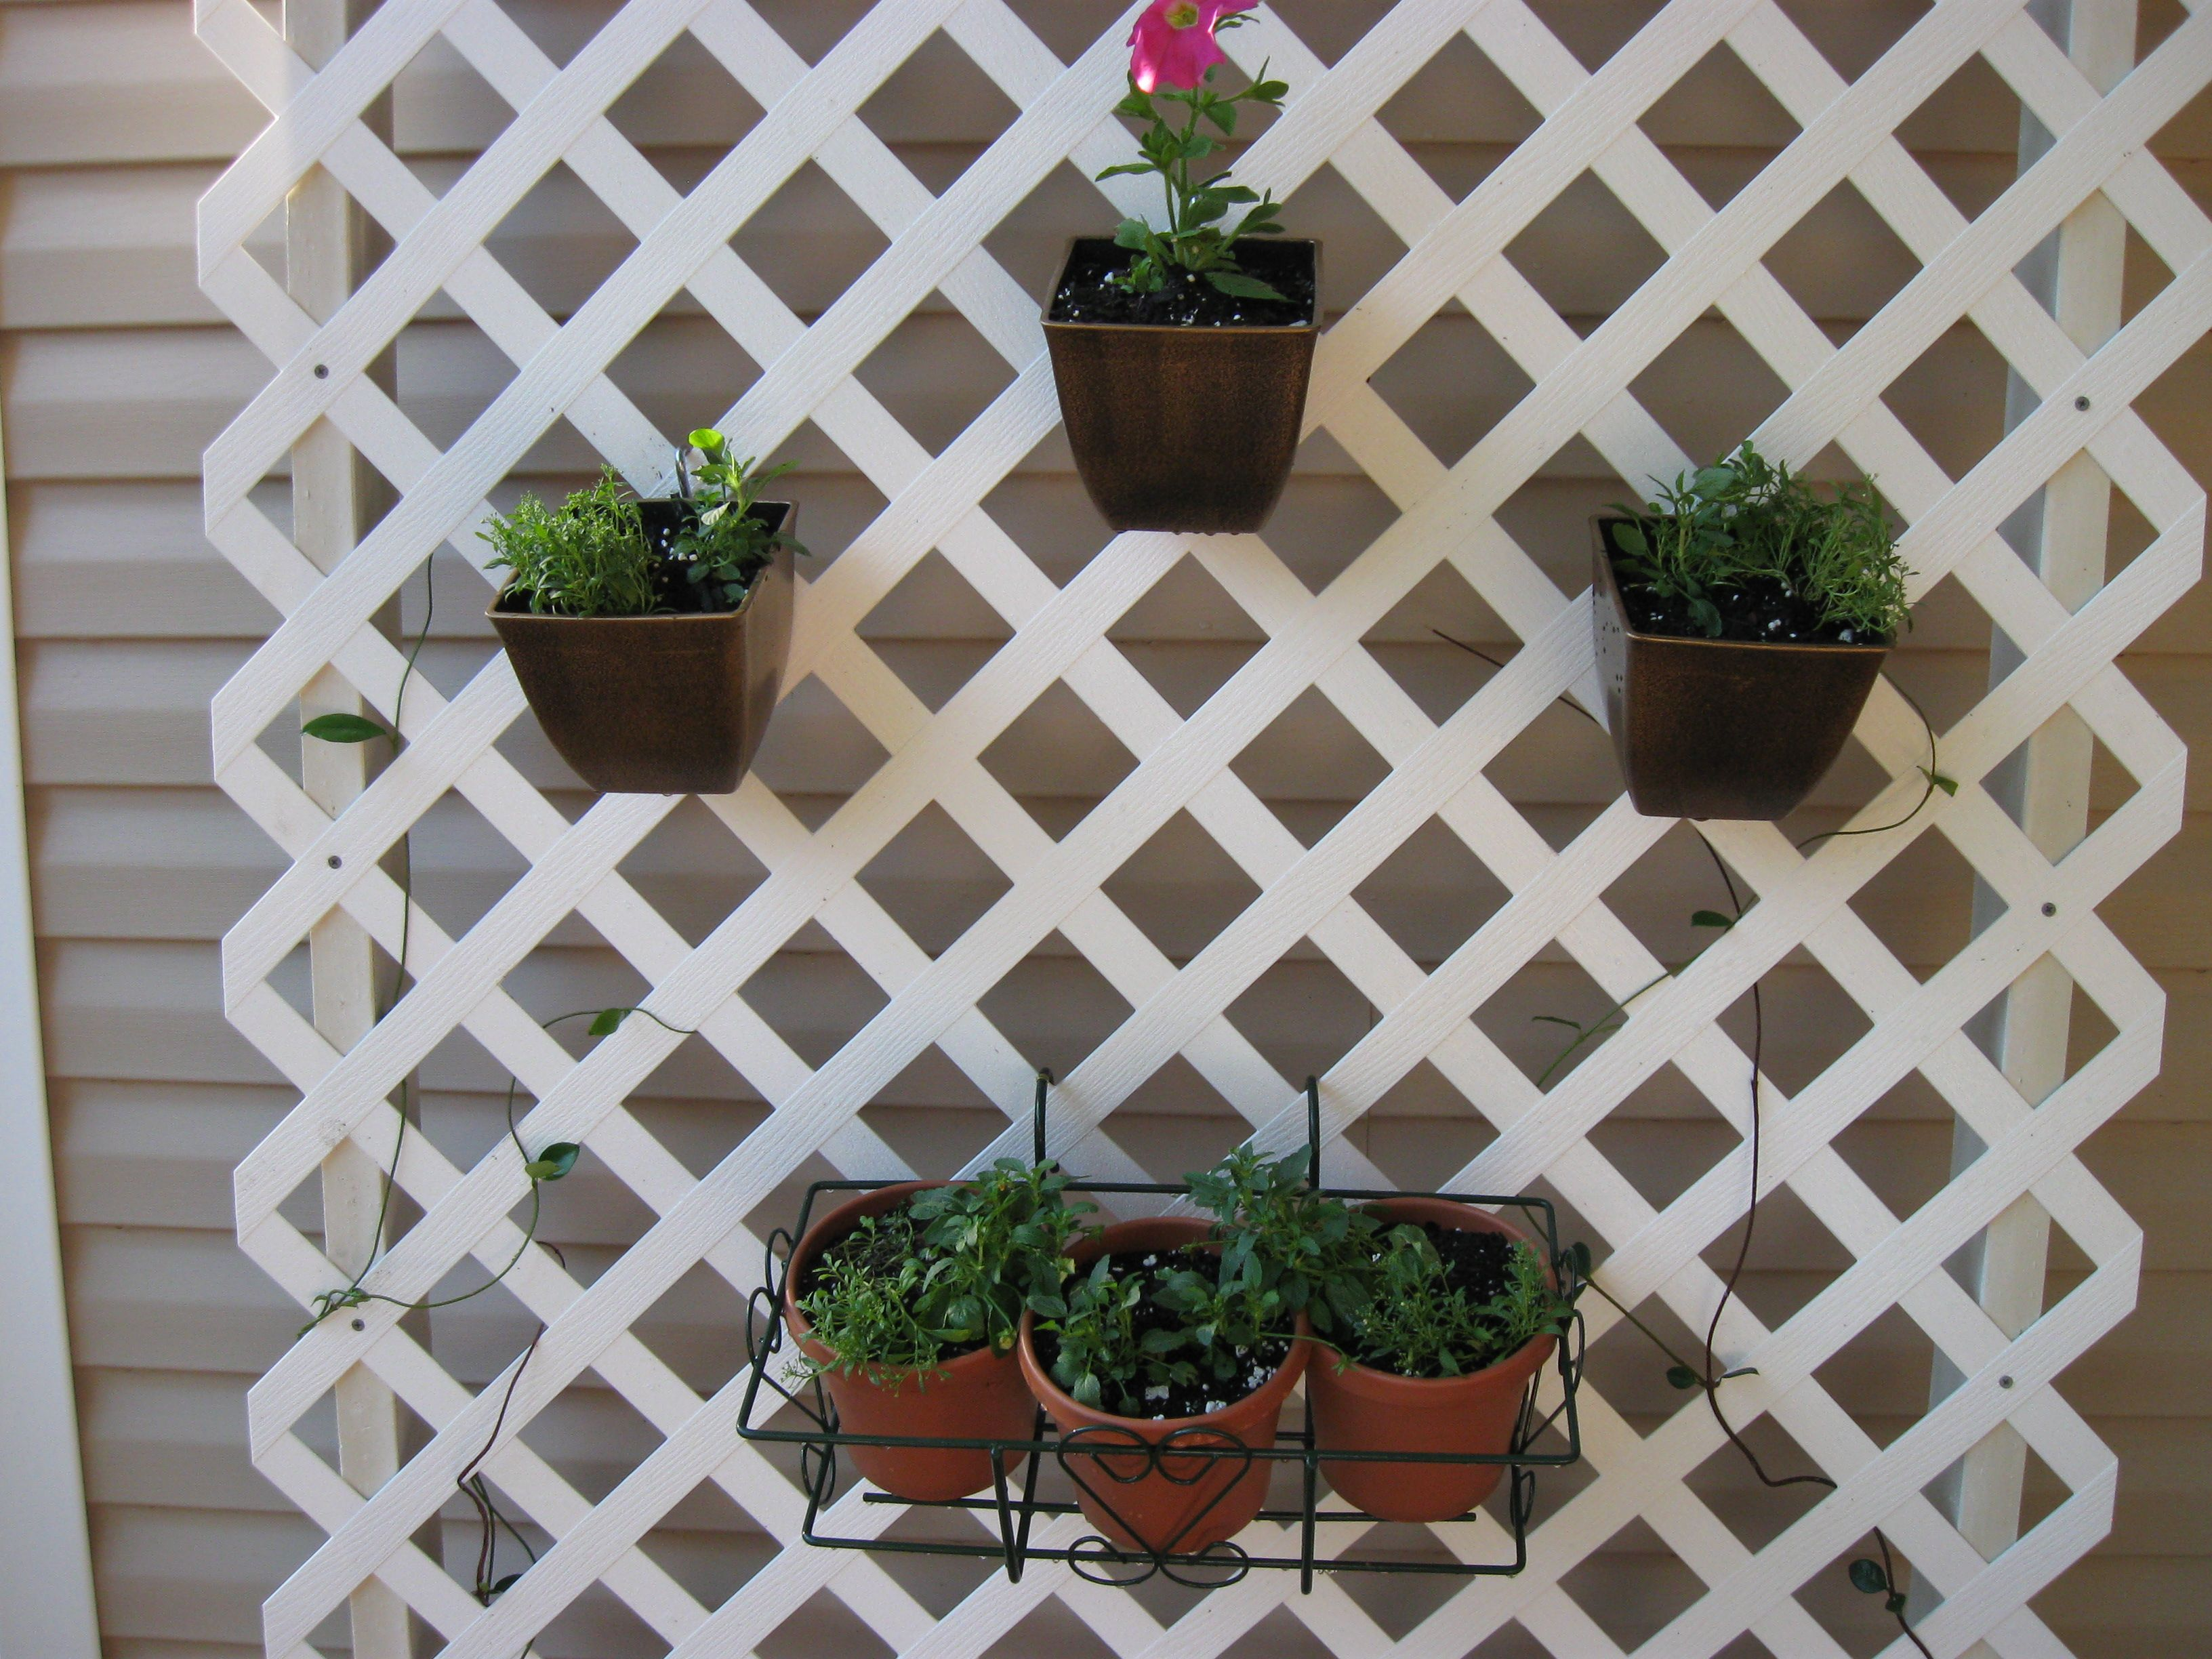 Trellis Container Gardening Provide Vertical Hanging Space For Pots, Using  S Hooks Through Drilled